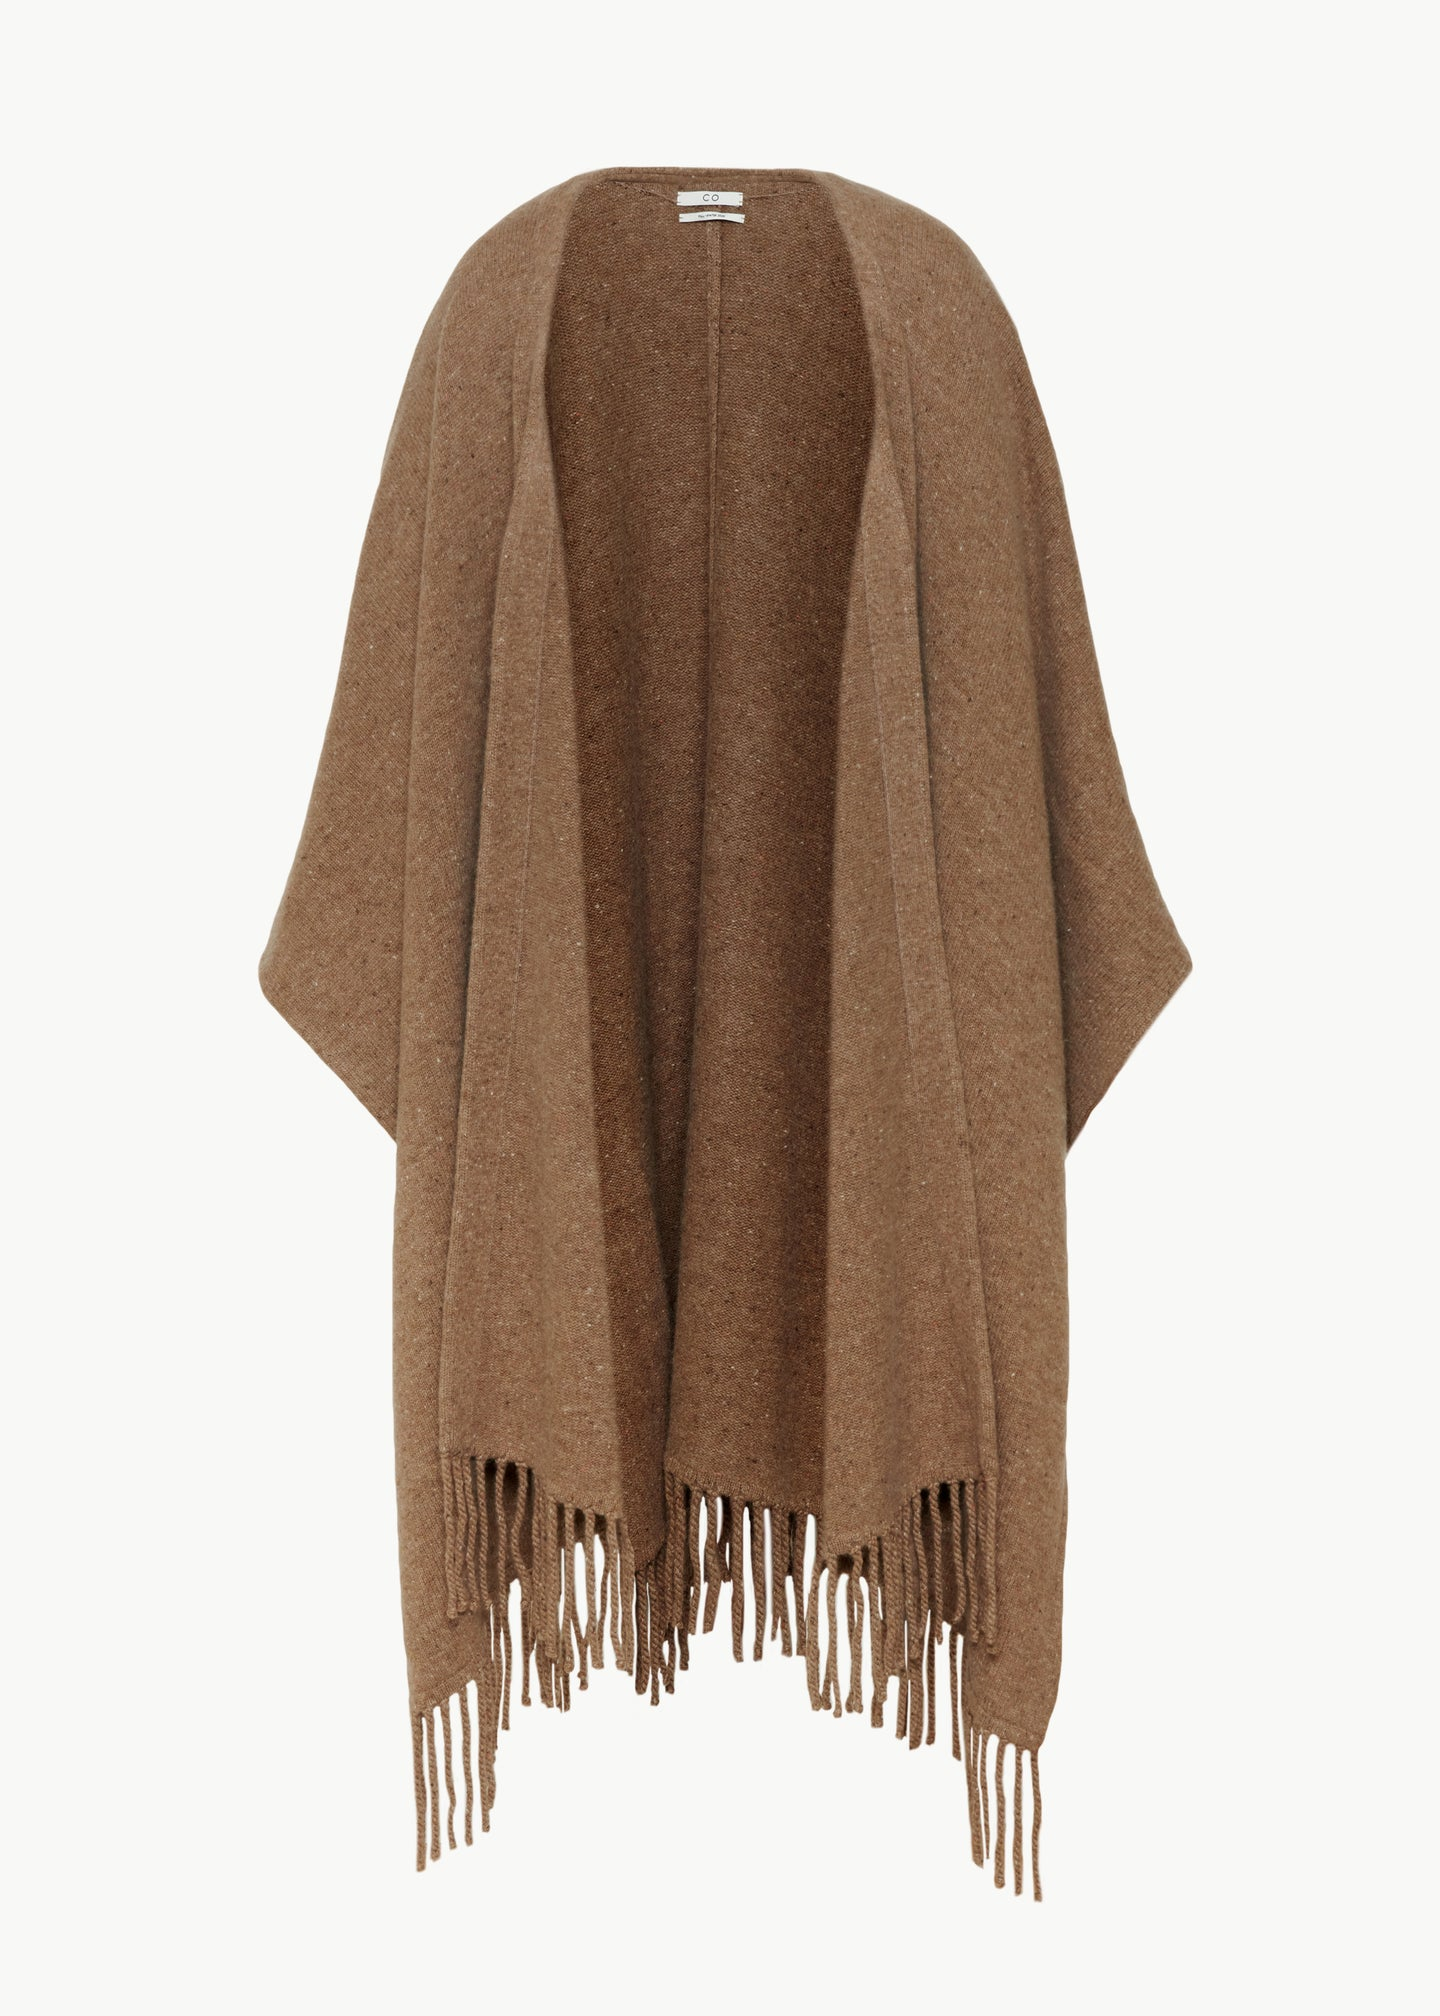 Poncho in Cashmere - Speckled Pecan - CO